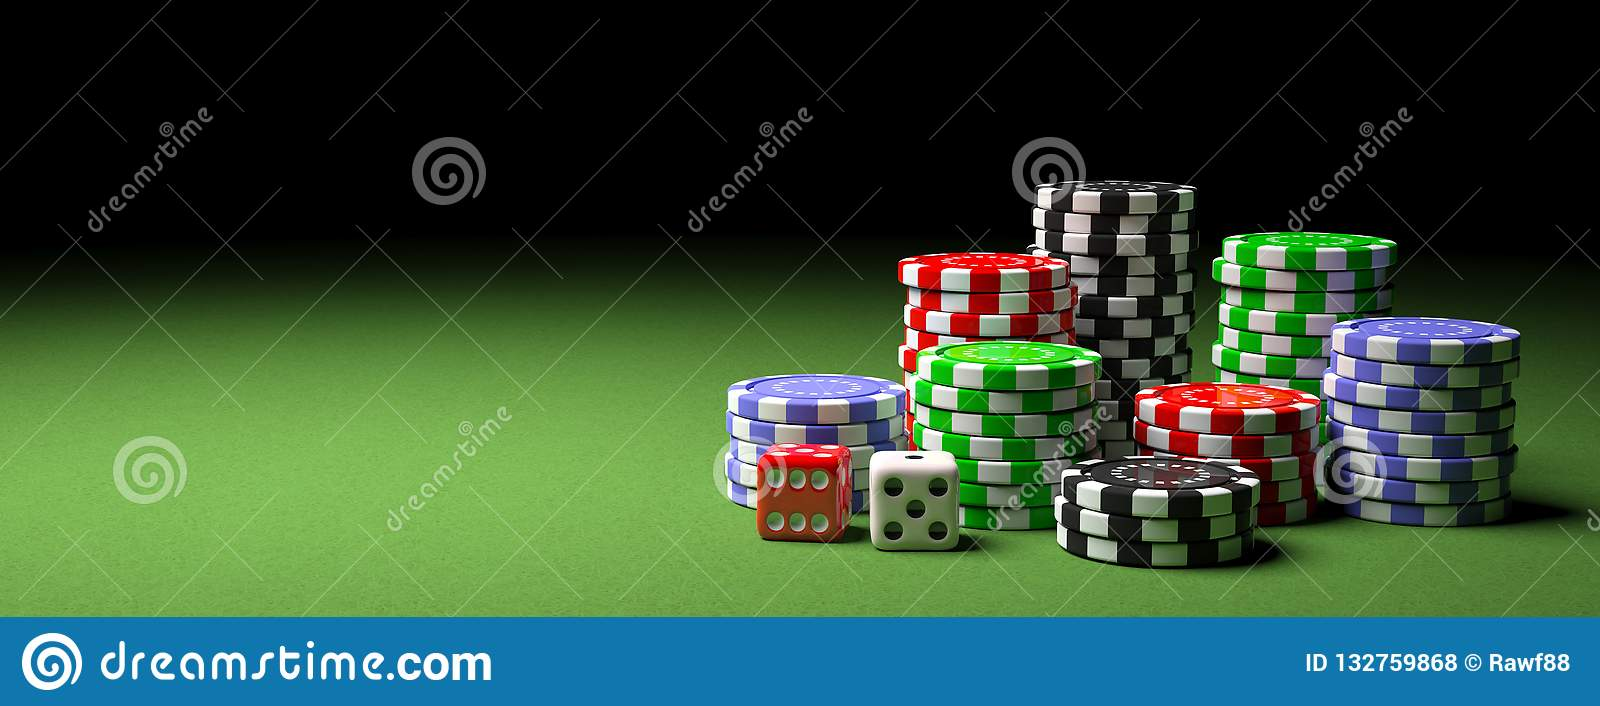 Poker chips piles and dice on green felt, banner, copy space. 3d illustration